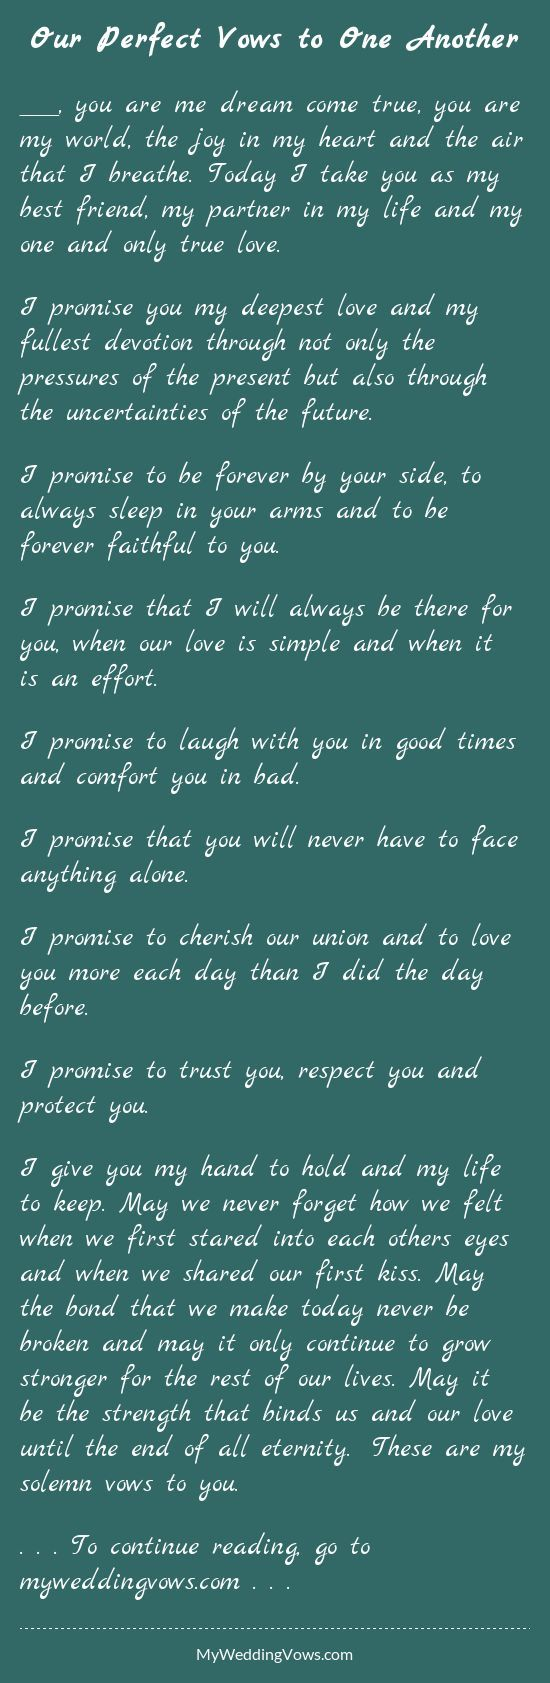 56 best vows images on Pinterest | Casamento, Weddings and Love